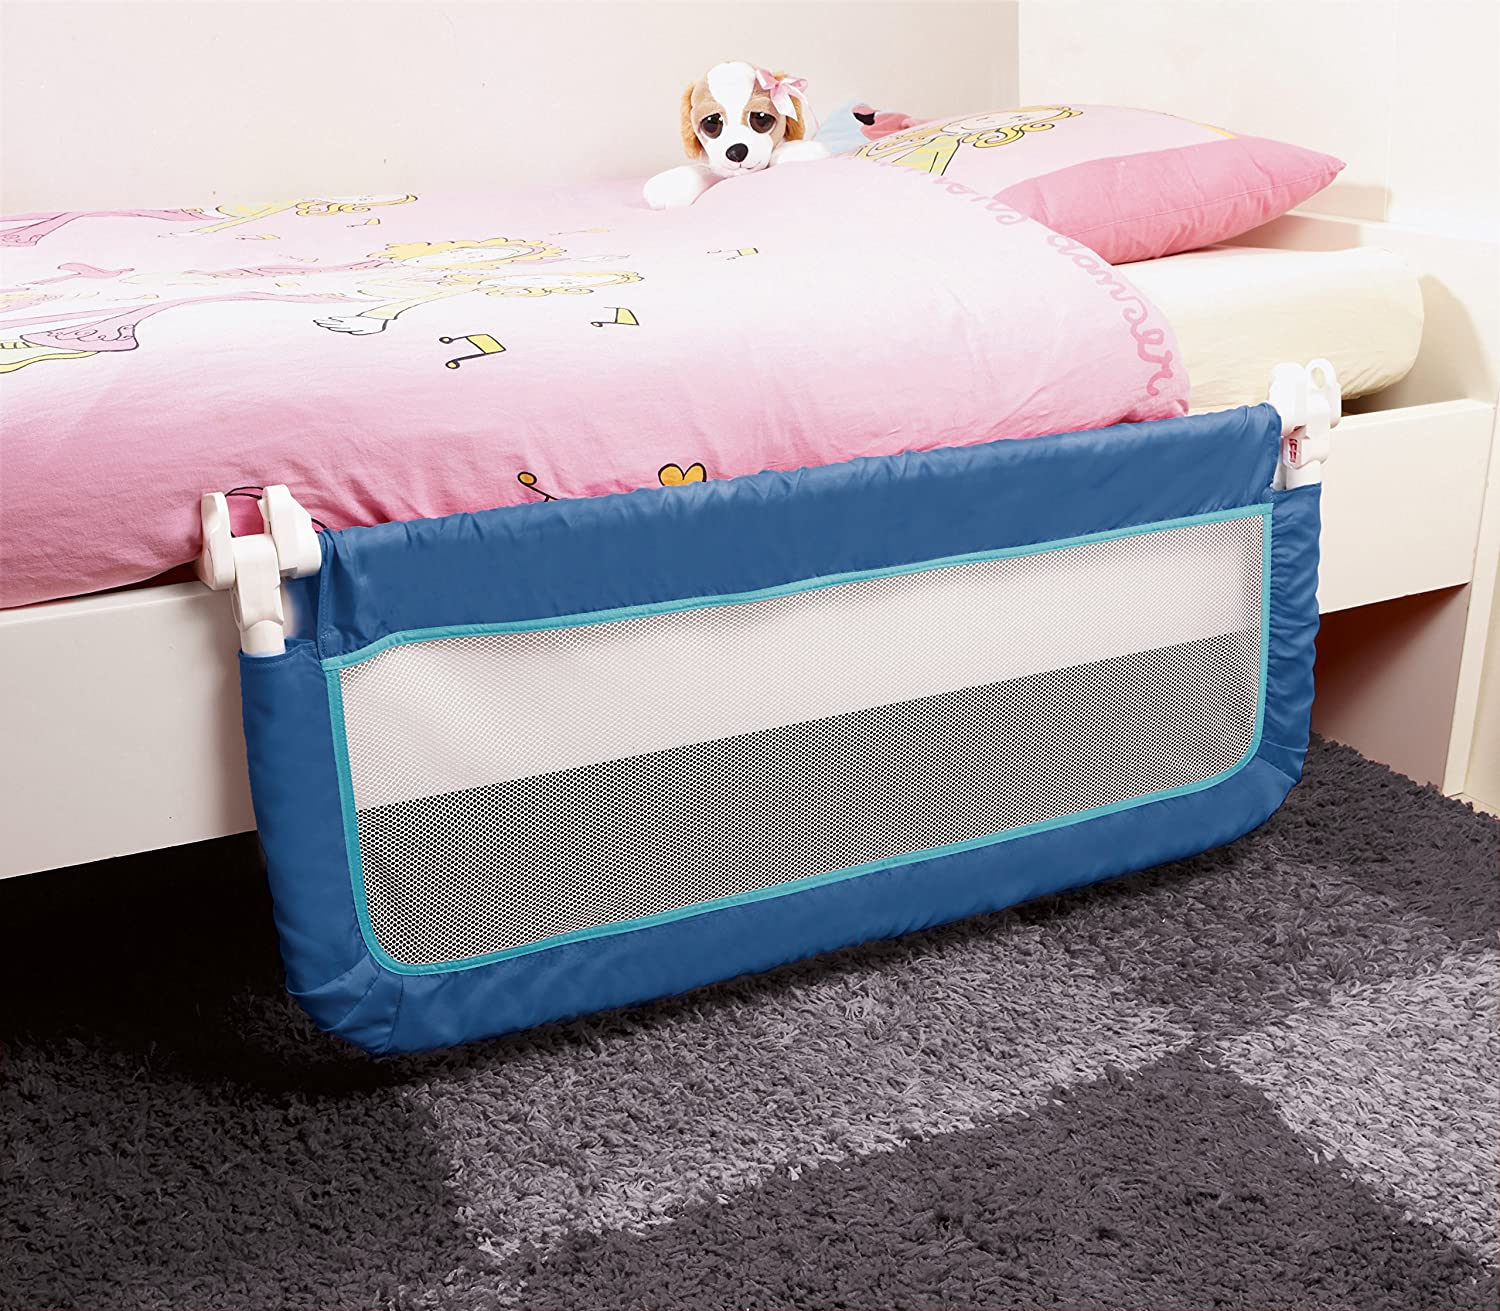 Safety 1st Portable Bed Rail, Blue: Amazon.co.uk: Baby